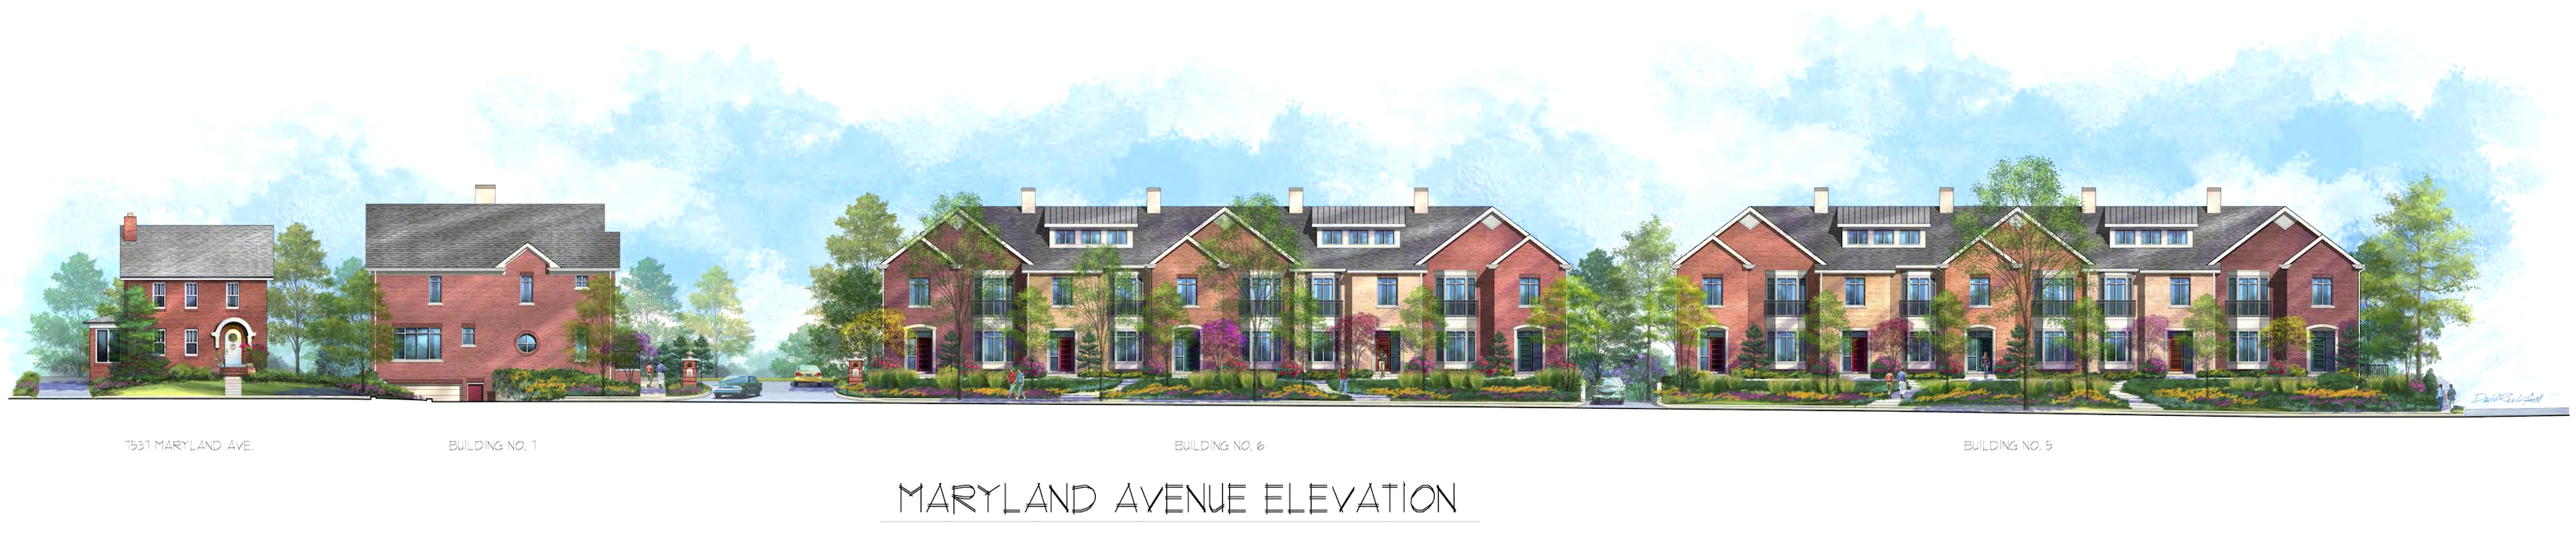 Maryland School Townhomes - Clayton, MO